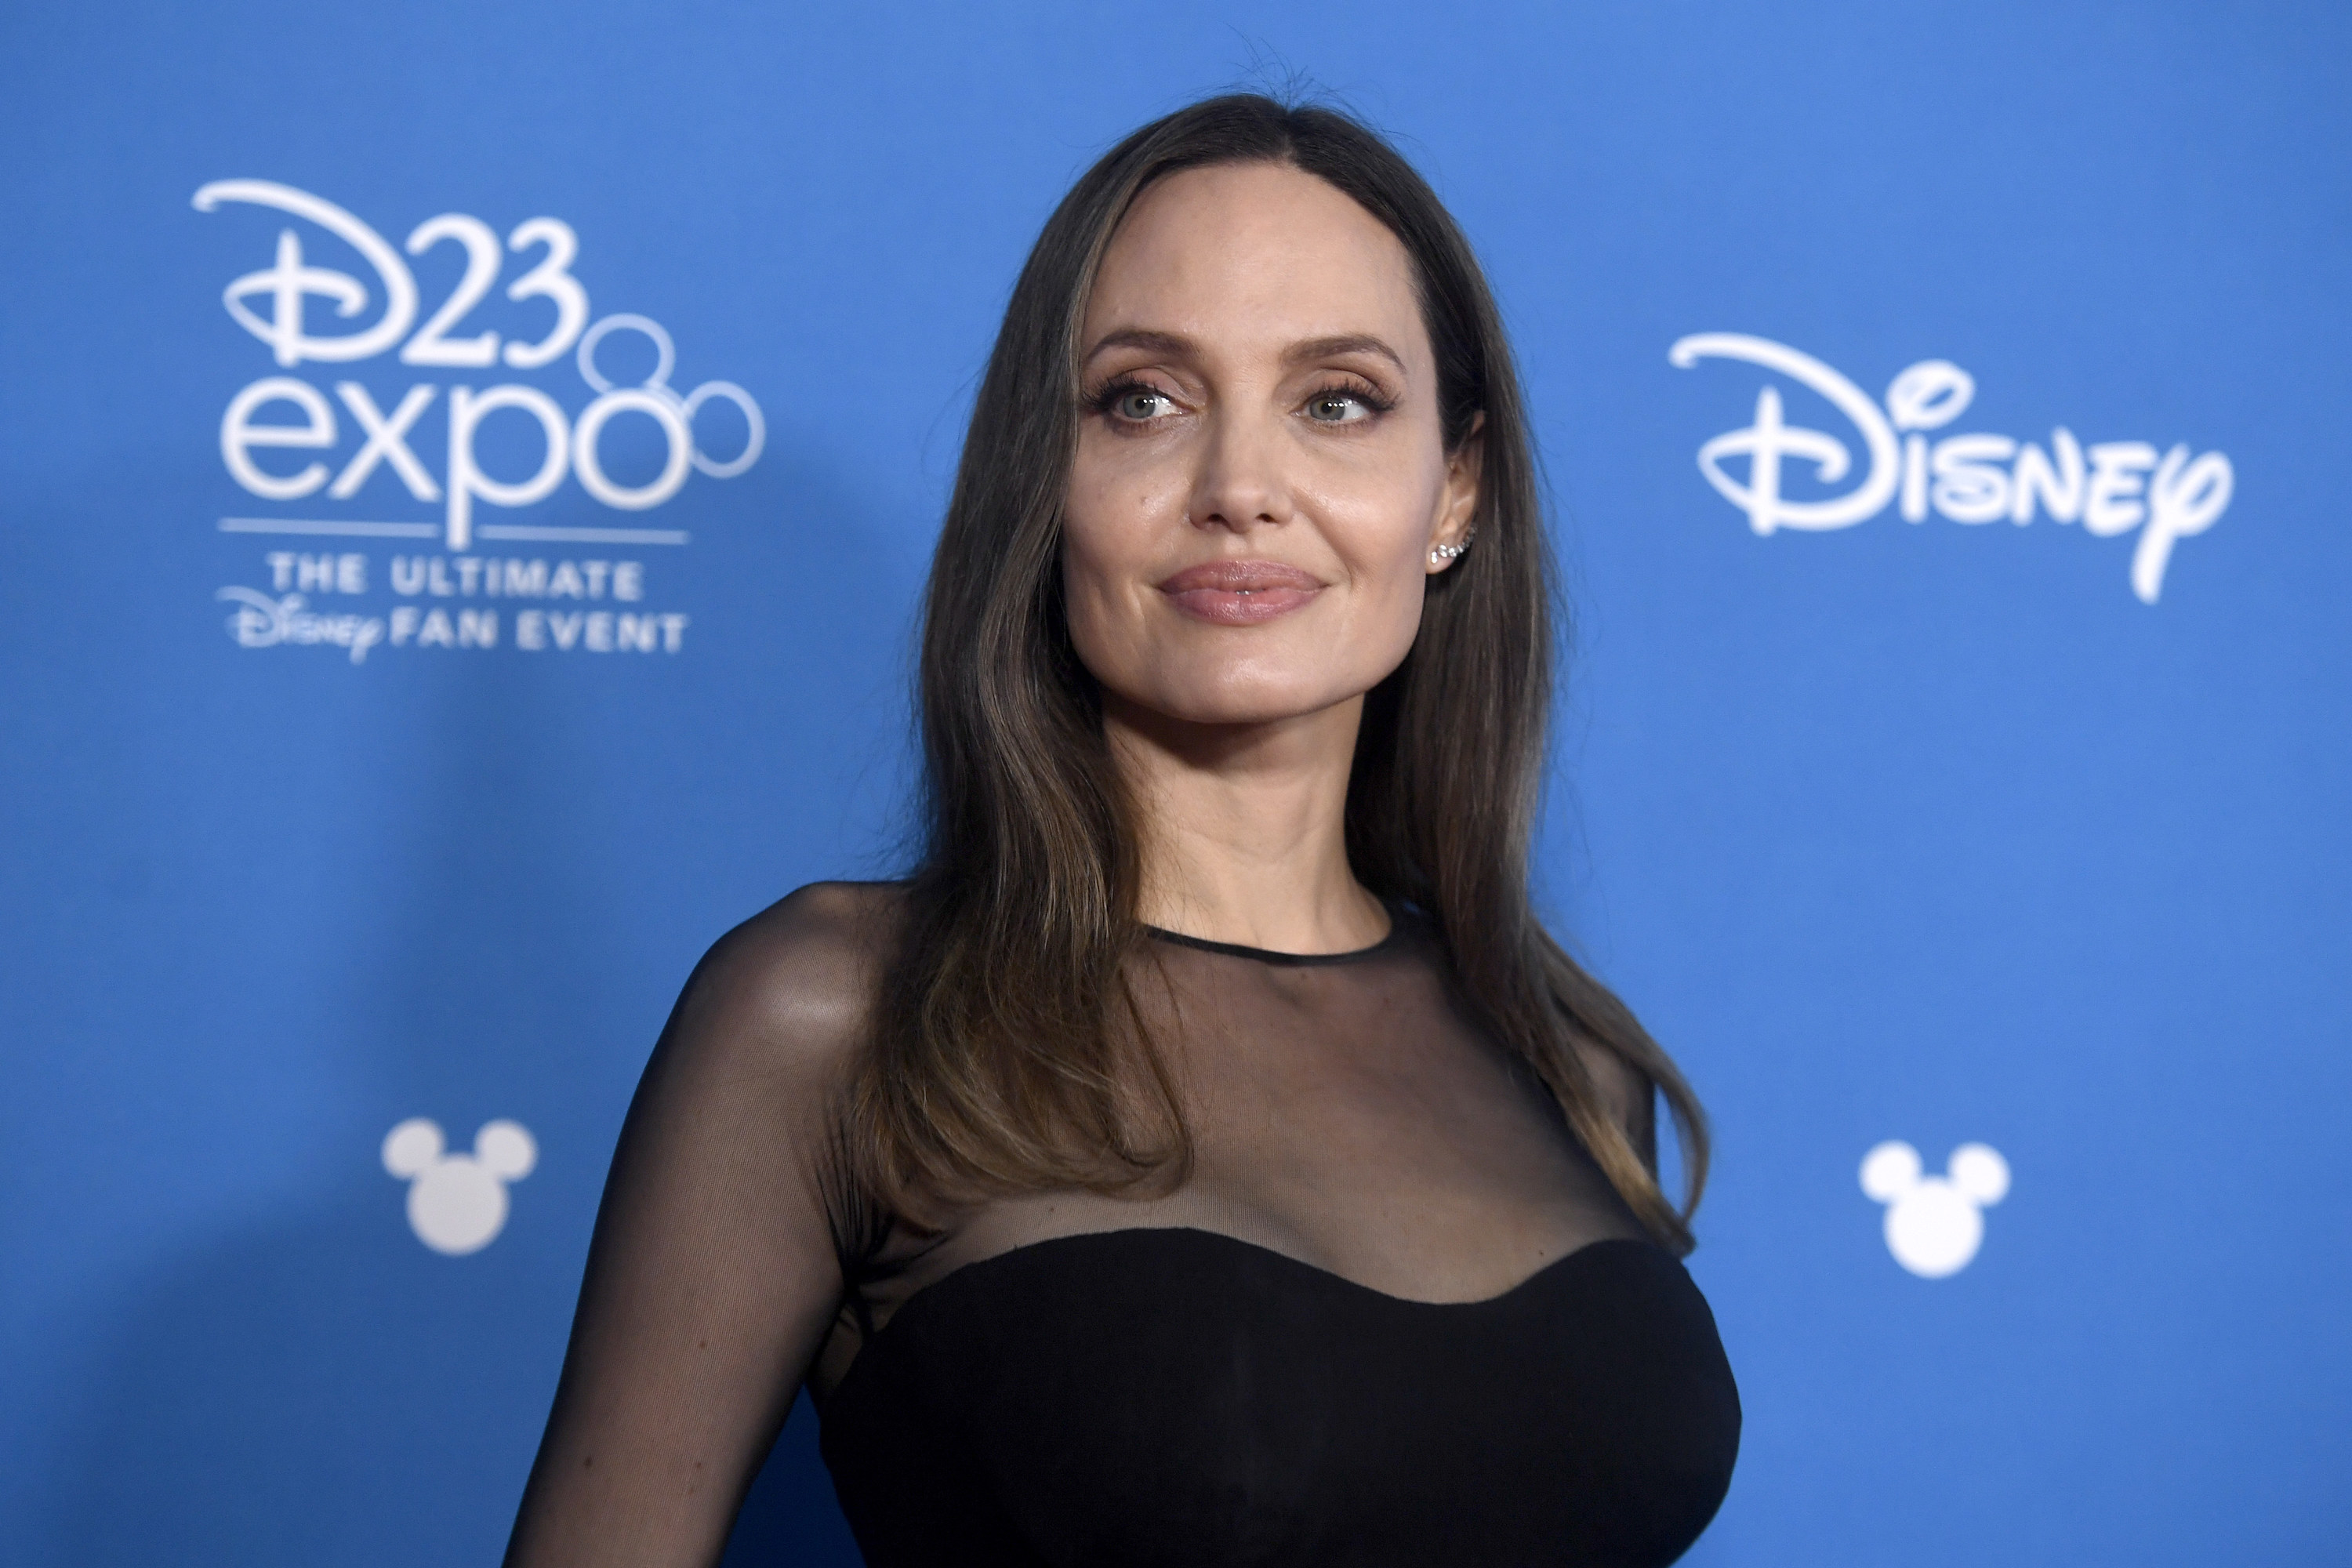 Angelina on the Disney red carpet